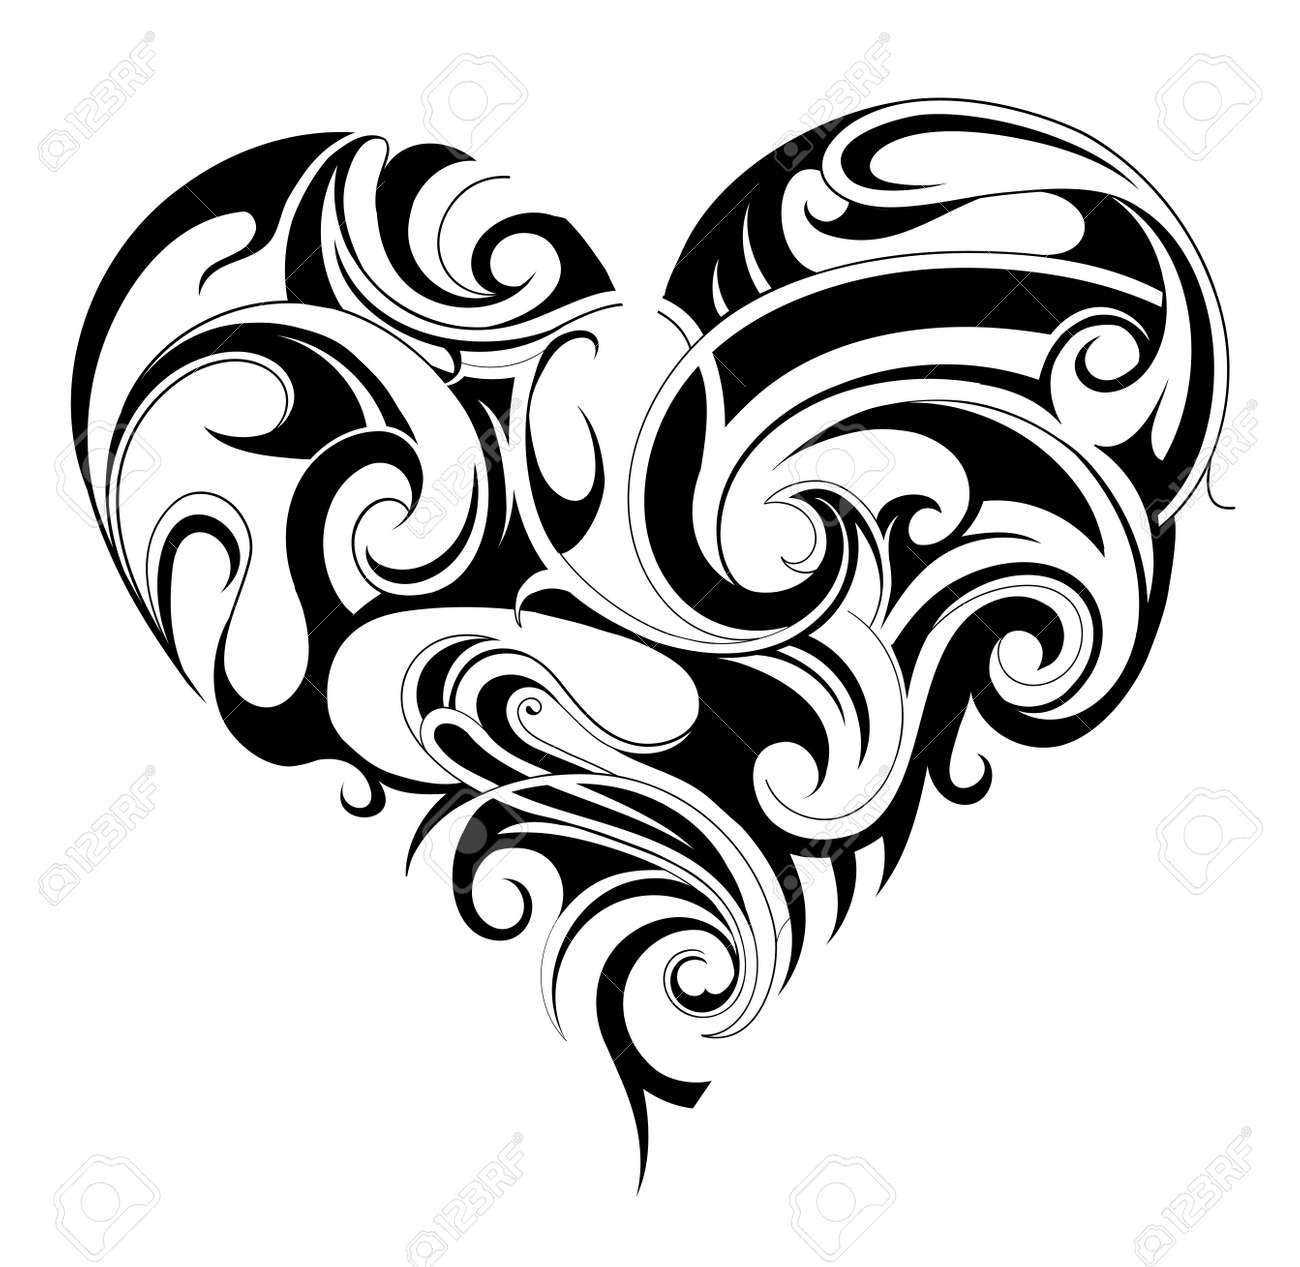 Heart shape tattoo ornament isolated on white - 36274774